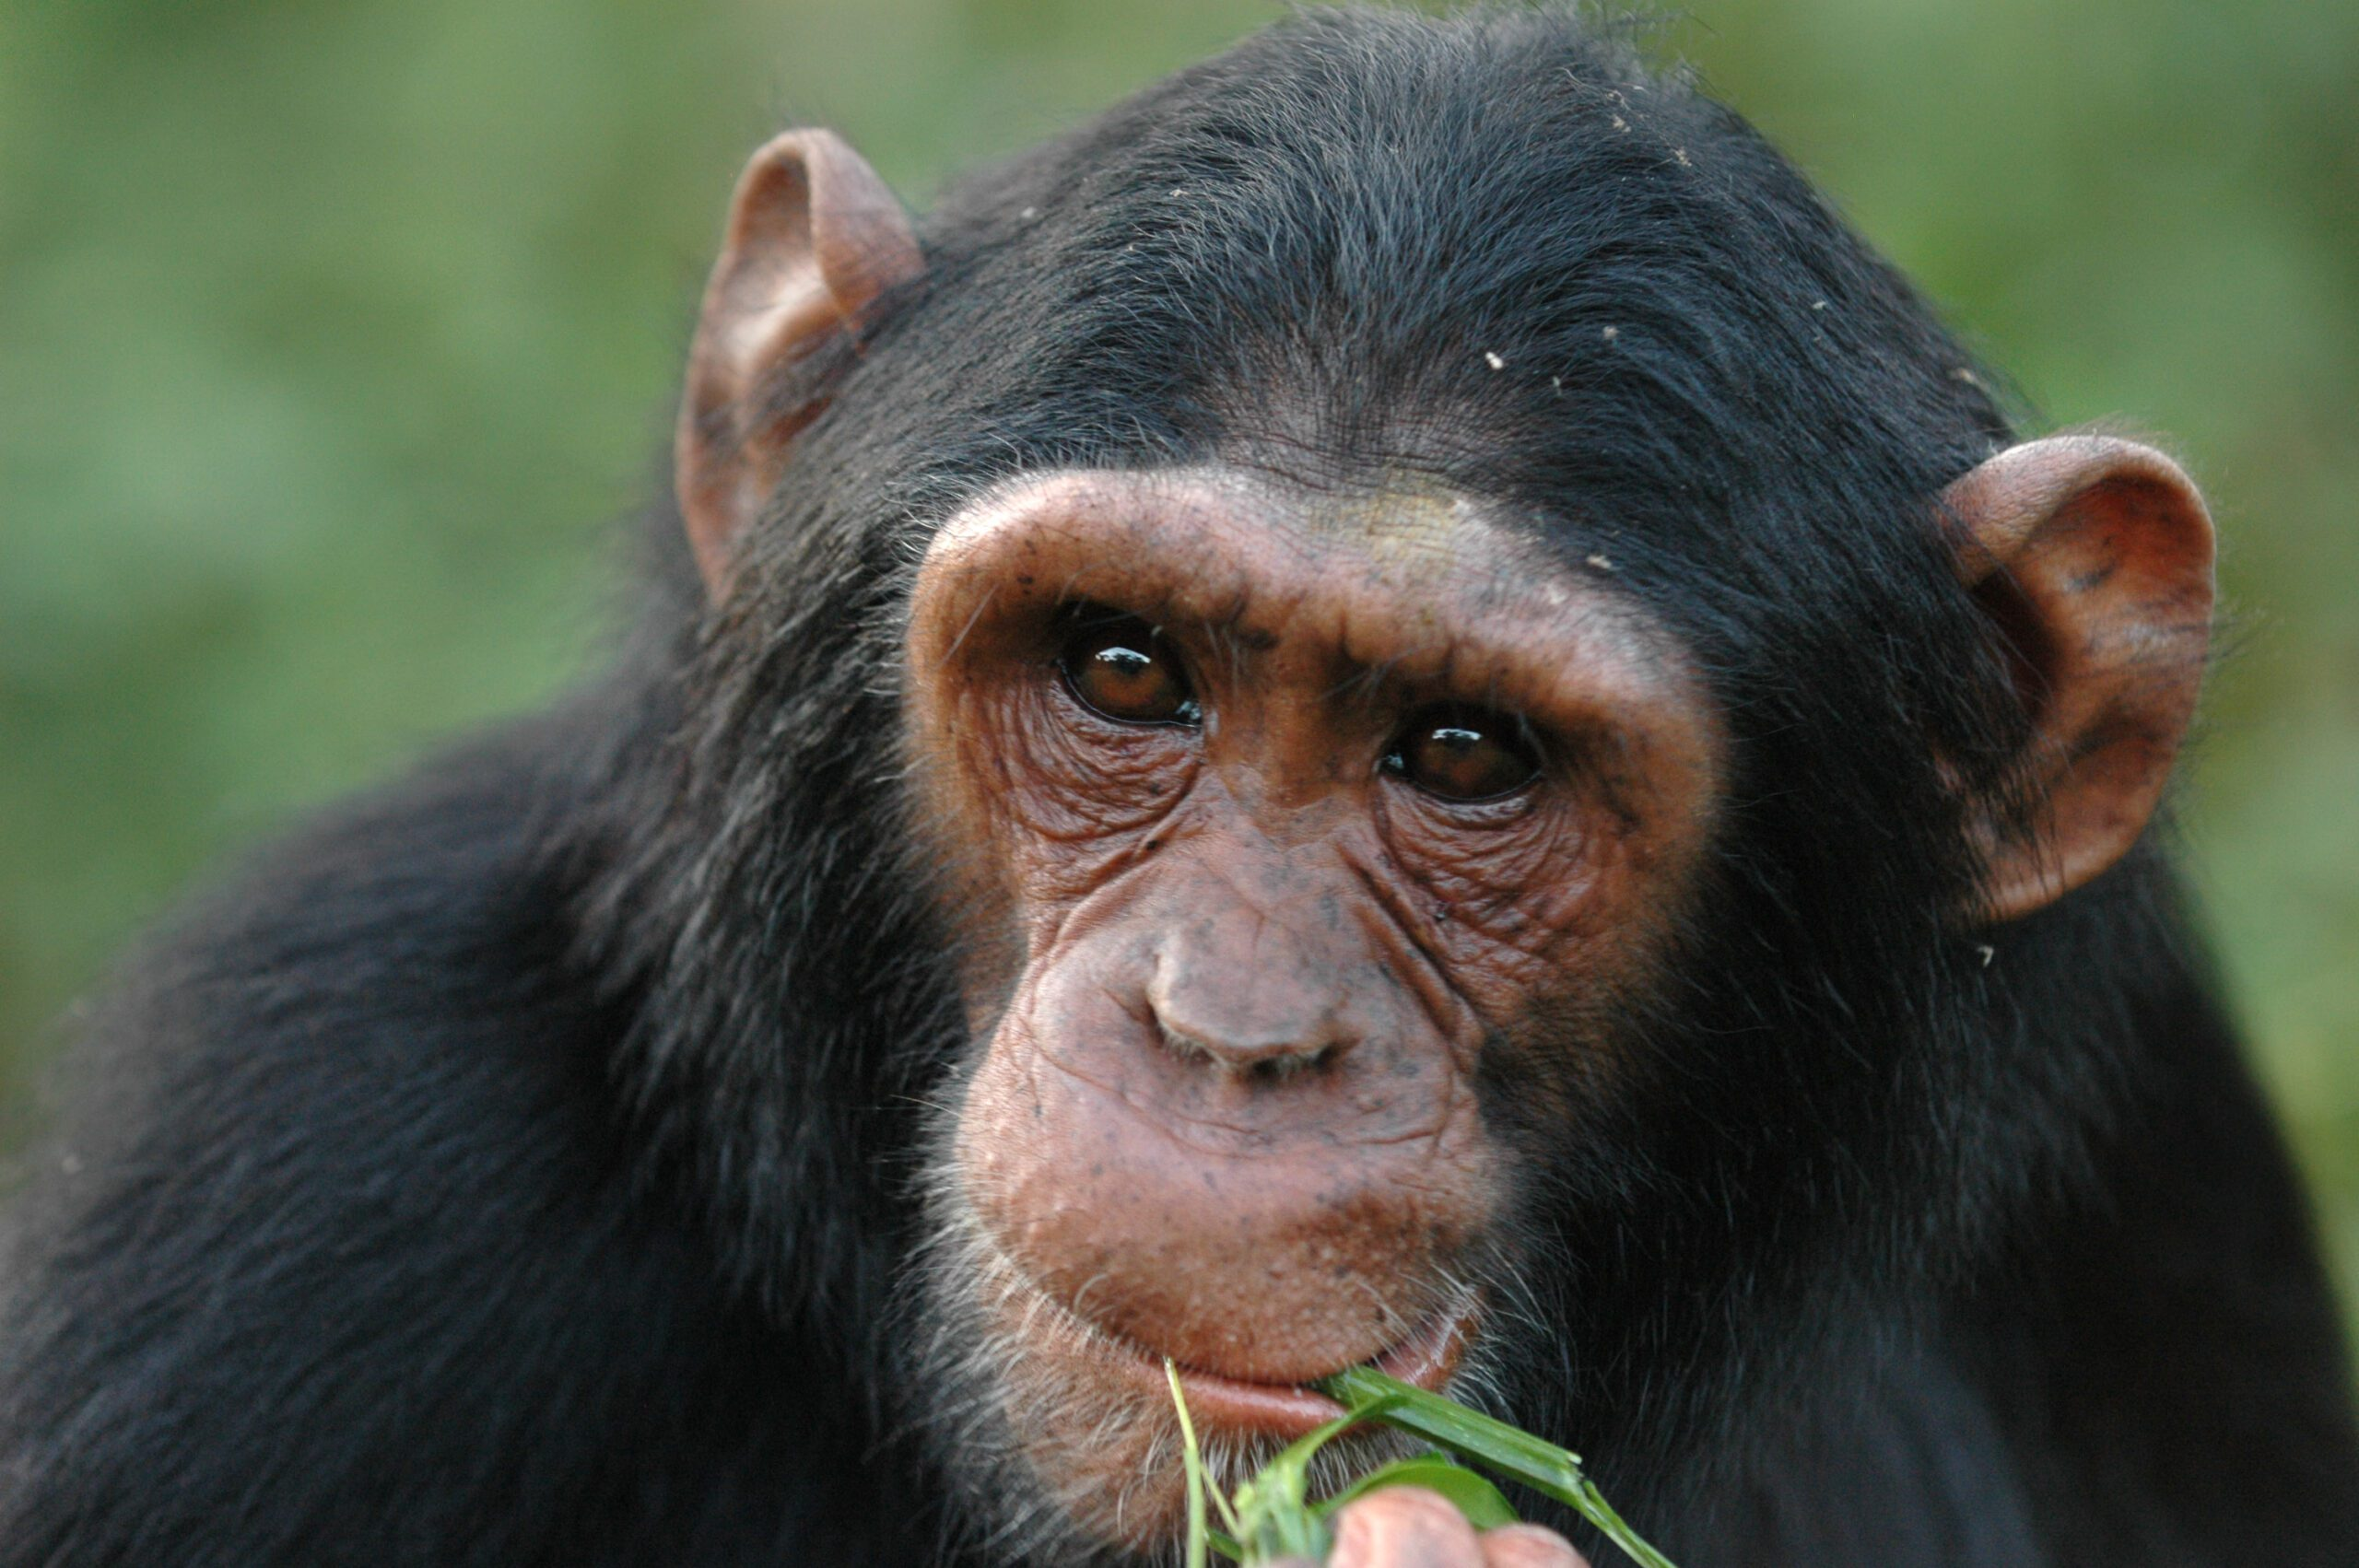 Close up of chimpanzee eating grass